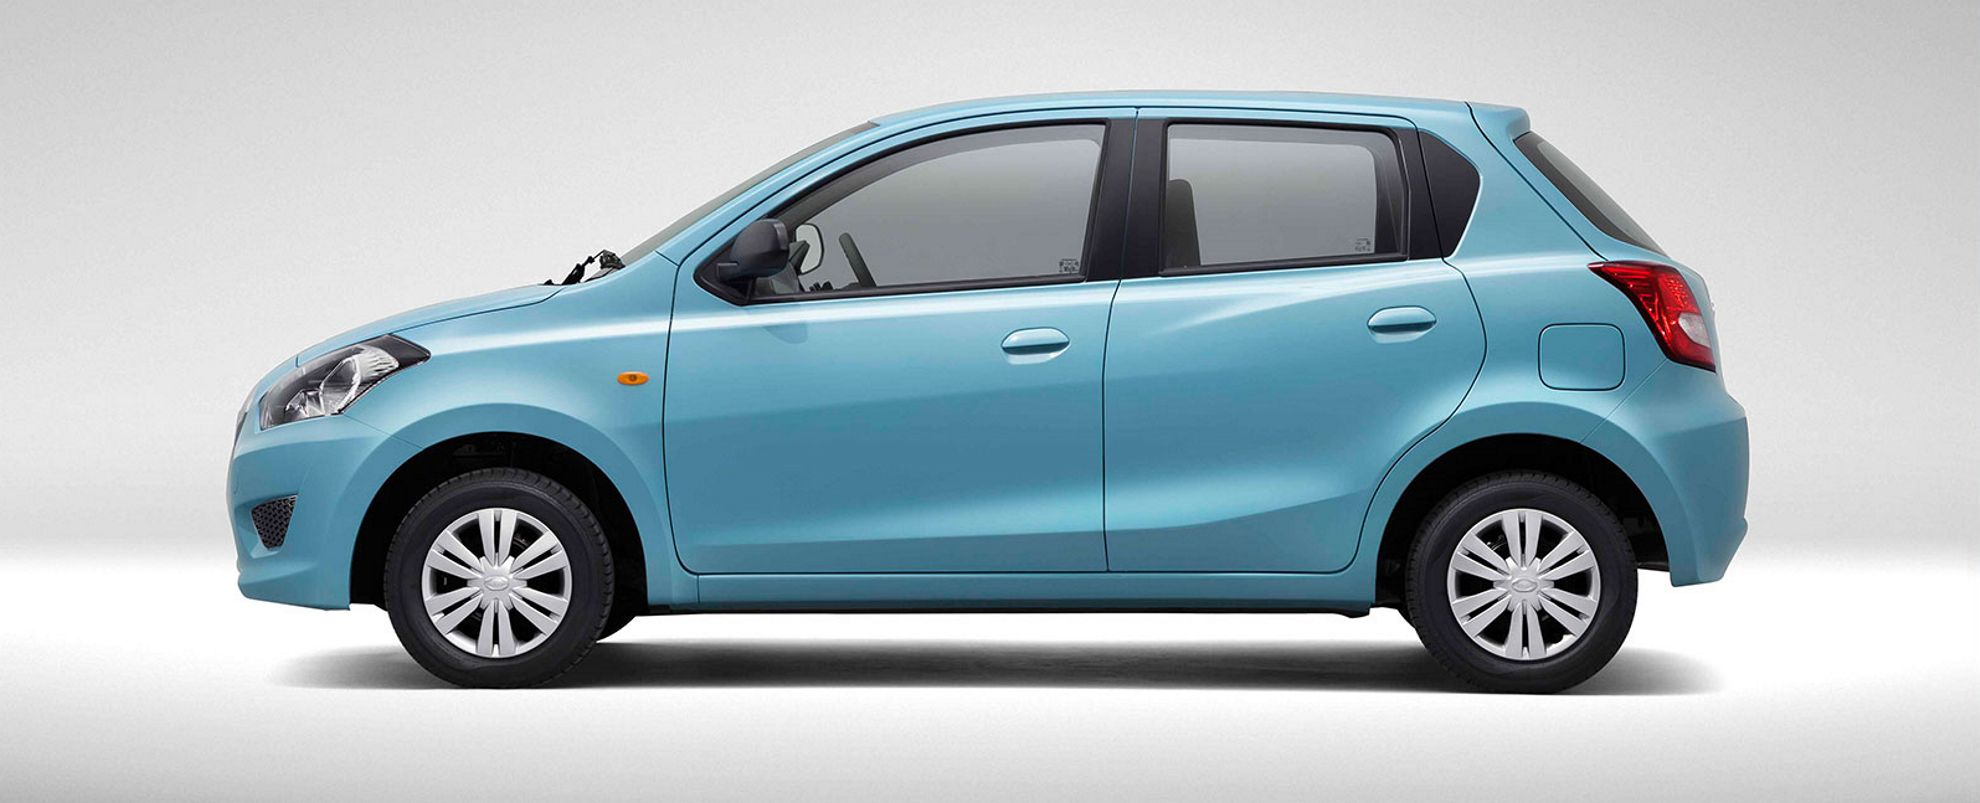 2014 Toyota Car Models In India | Autos Post